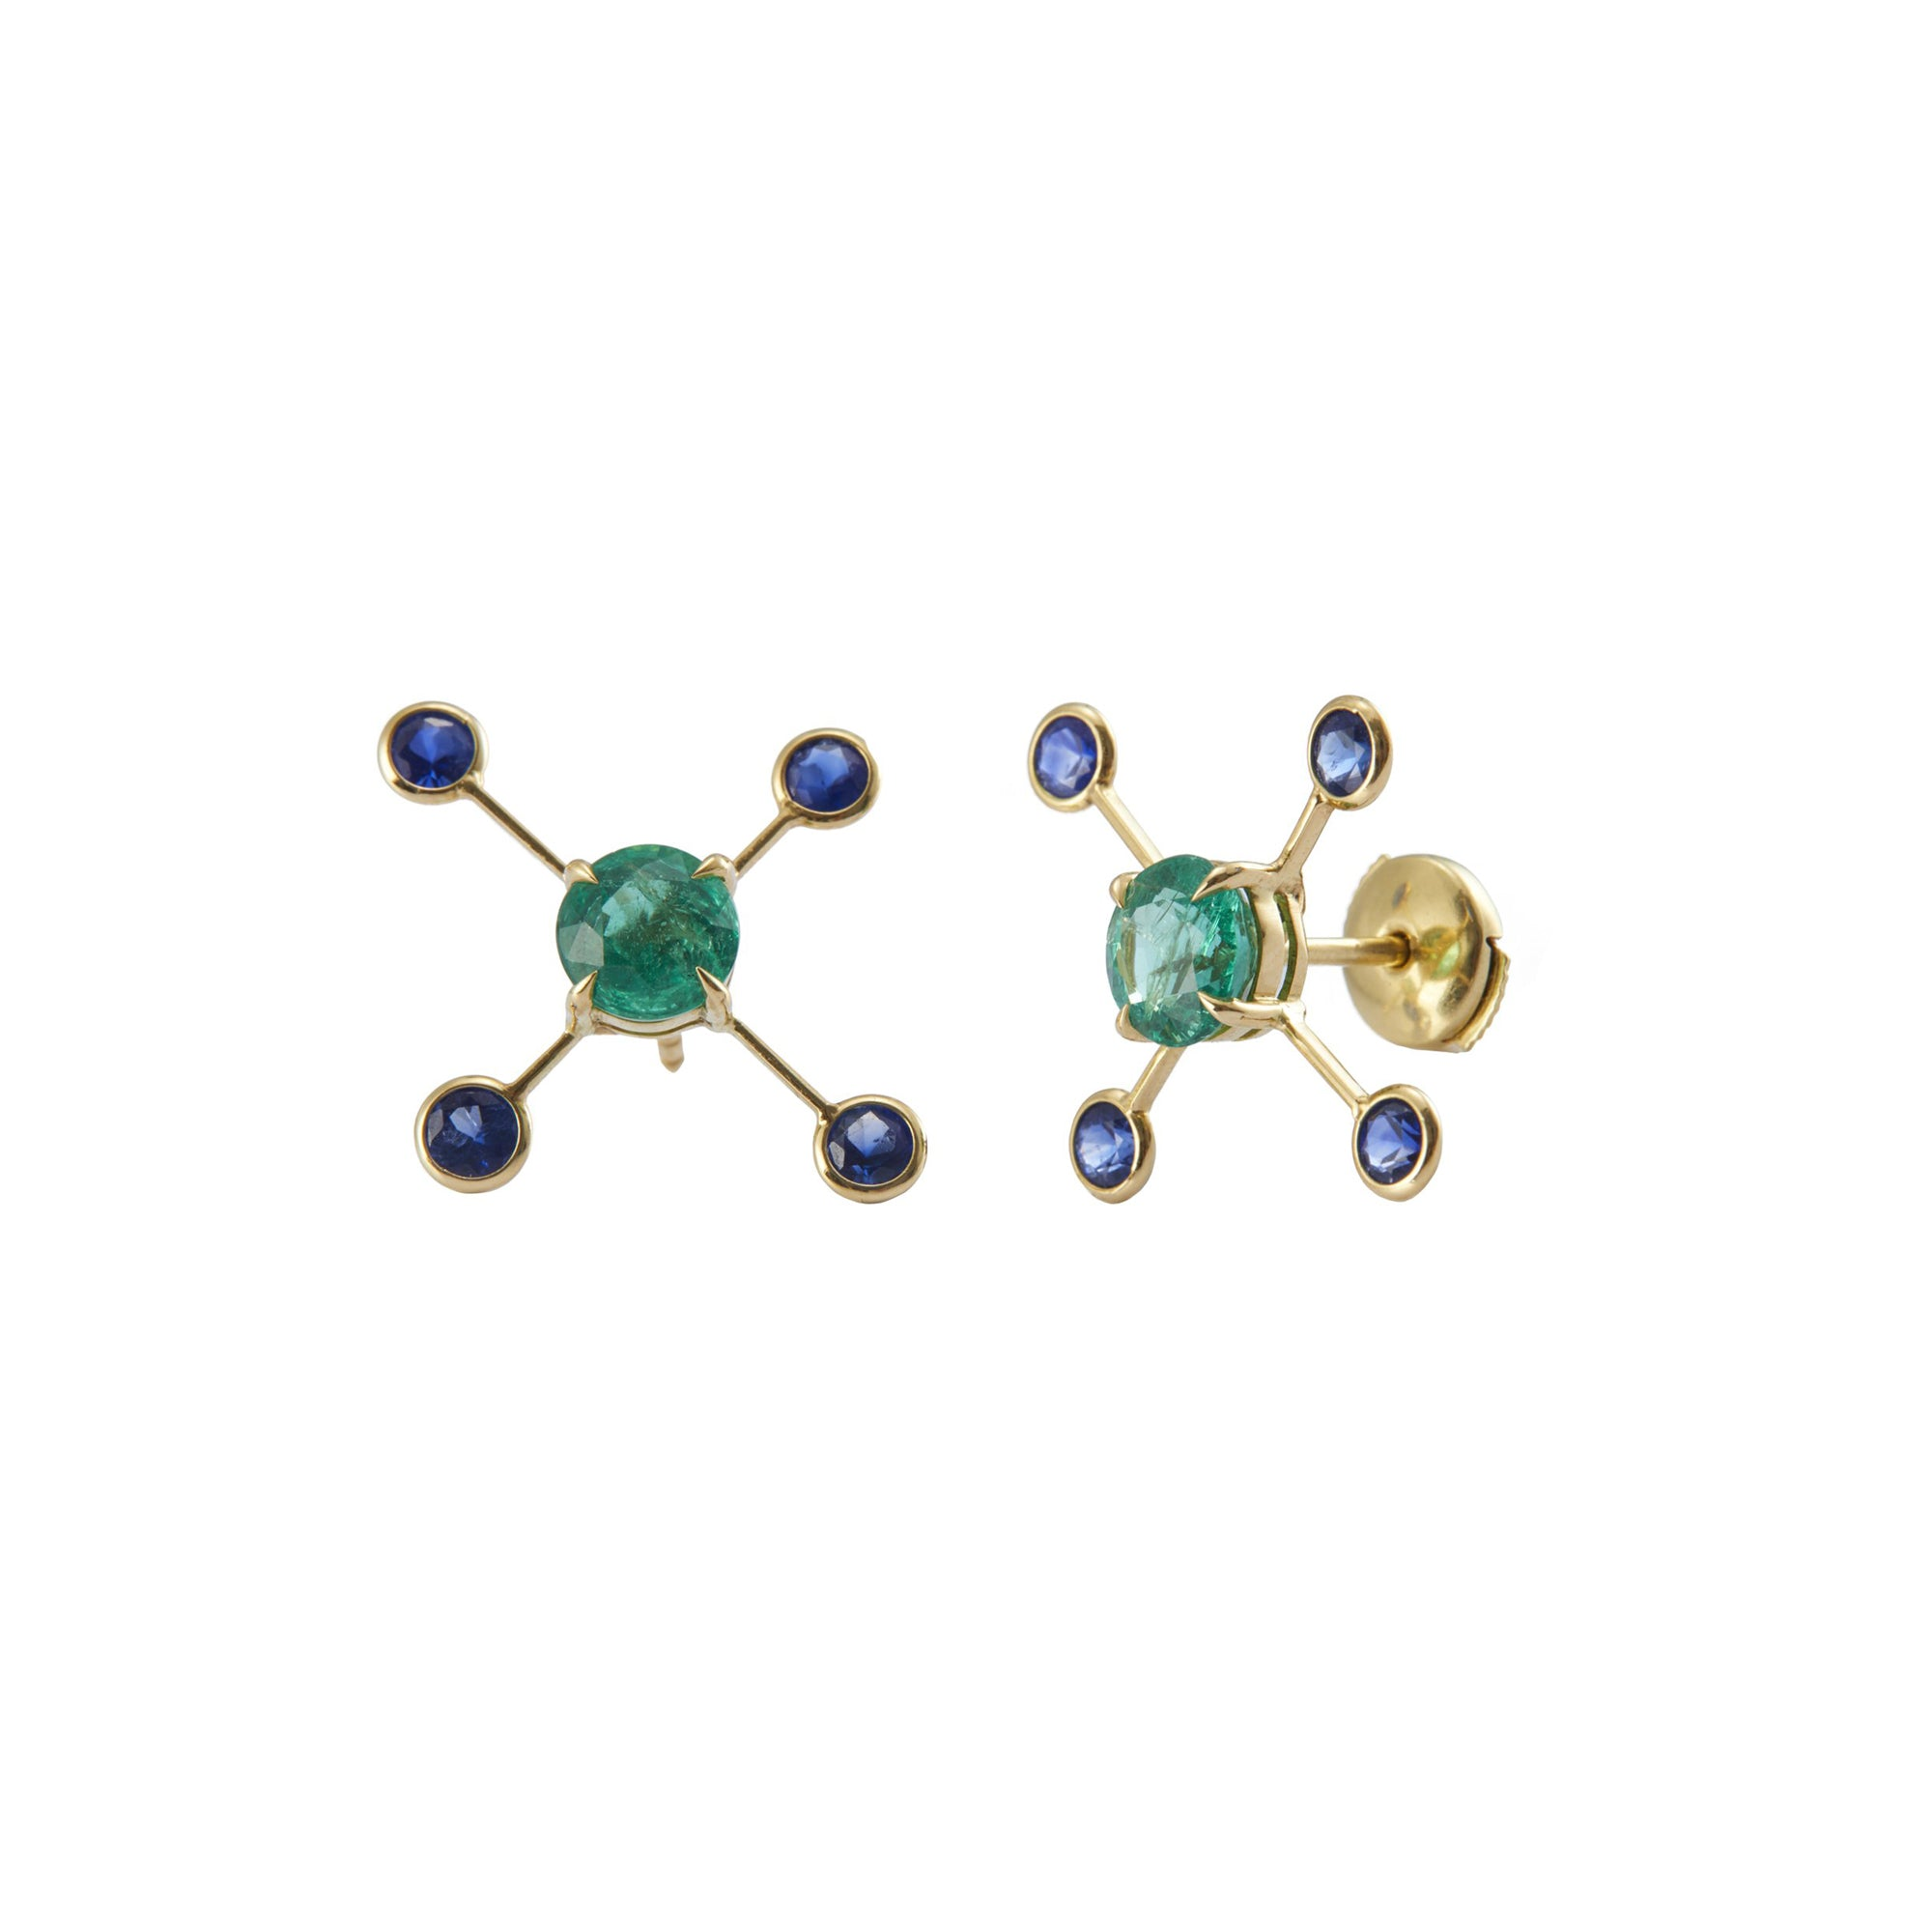 YI Collection Supernova Earrings - Emerald & Sapphire - Earrings - Broken English Jewelry